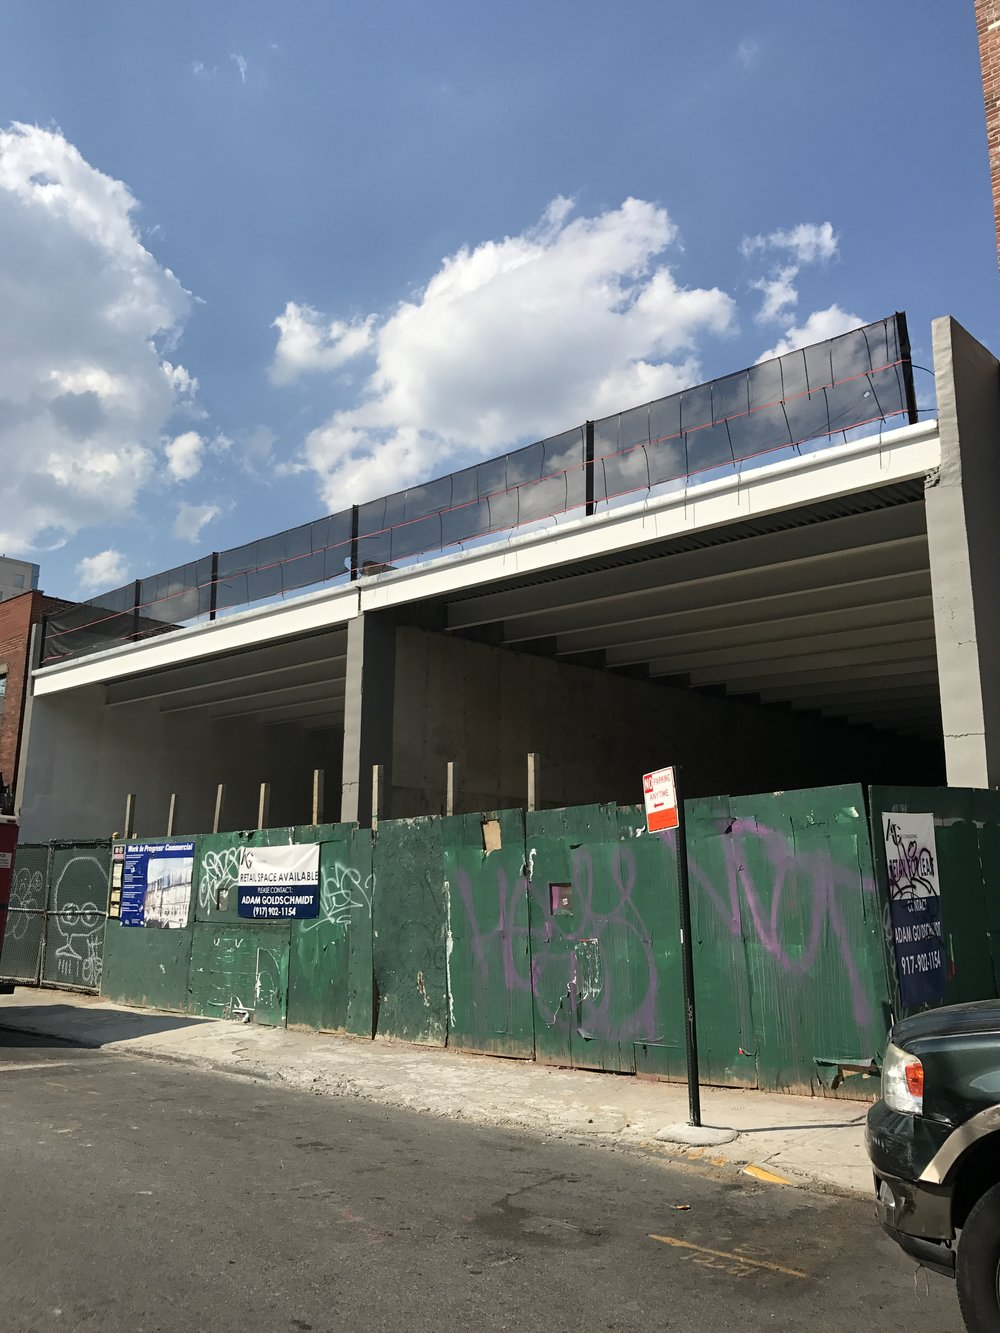 76 North 6th Street, Brooklyn (in progress) - Client: Dankyle RealtyArchitect: Bureau V4-story, 7 unit mixed use building.Services Provided:• Research, Zoning, and Code Consulting• Filing and Approval of all DOB and FDNY         related new building applications        • Condo Subdivision• Permit Procurement• Certificate of Occupancy• Walk-through Inspections,  Application Sign-    off